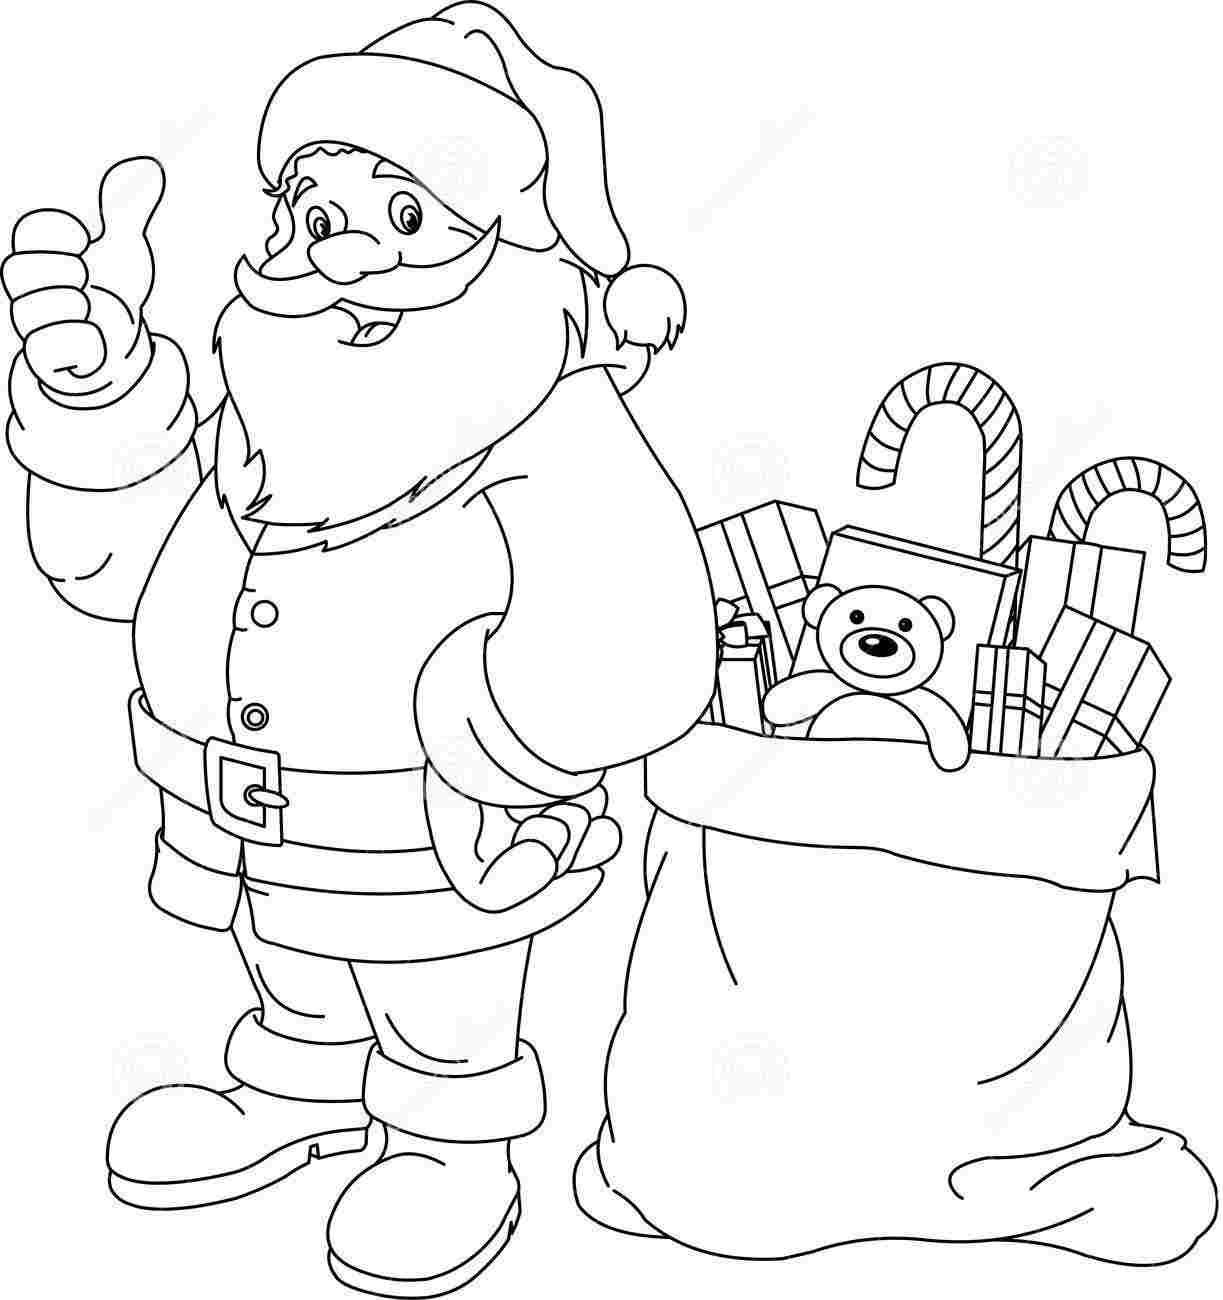 Santa claus coloring pages 01 christmas coloring pages for Santa coloring pages free